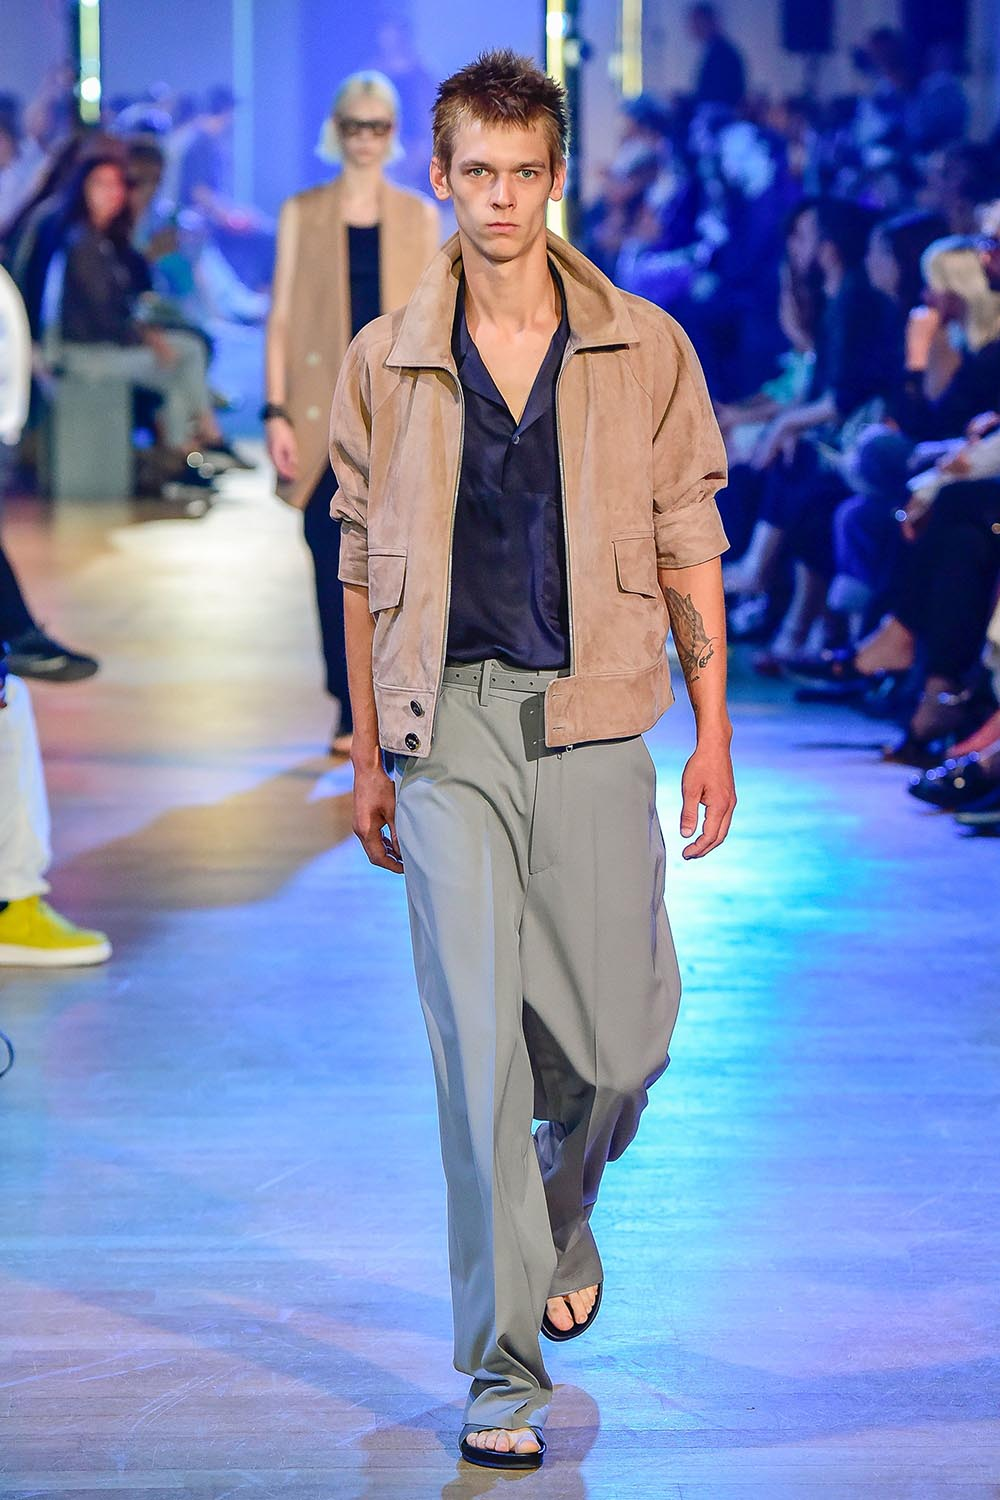 Cerruti 1881 Paris Fashion Week Men's SS19 - Sagaboi - Look 18